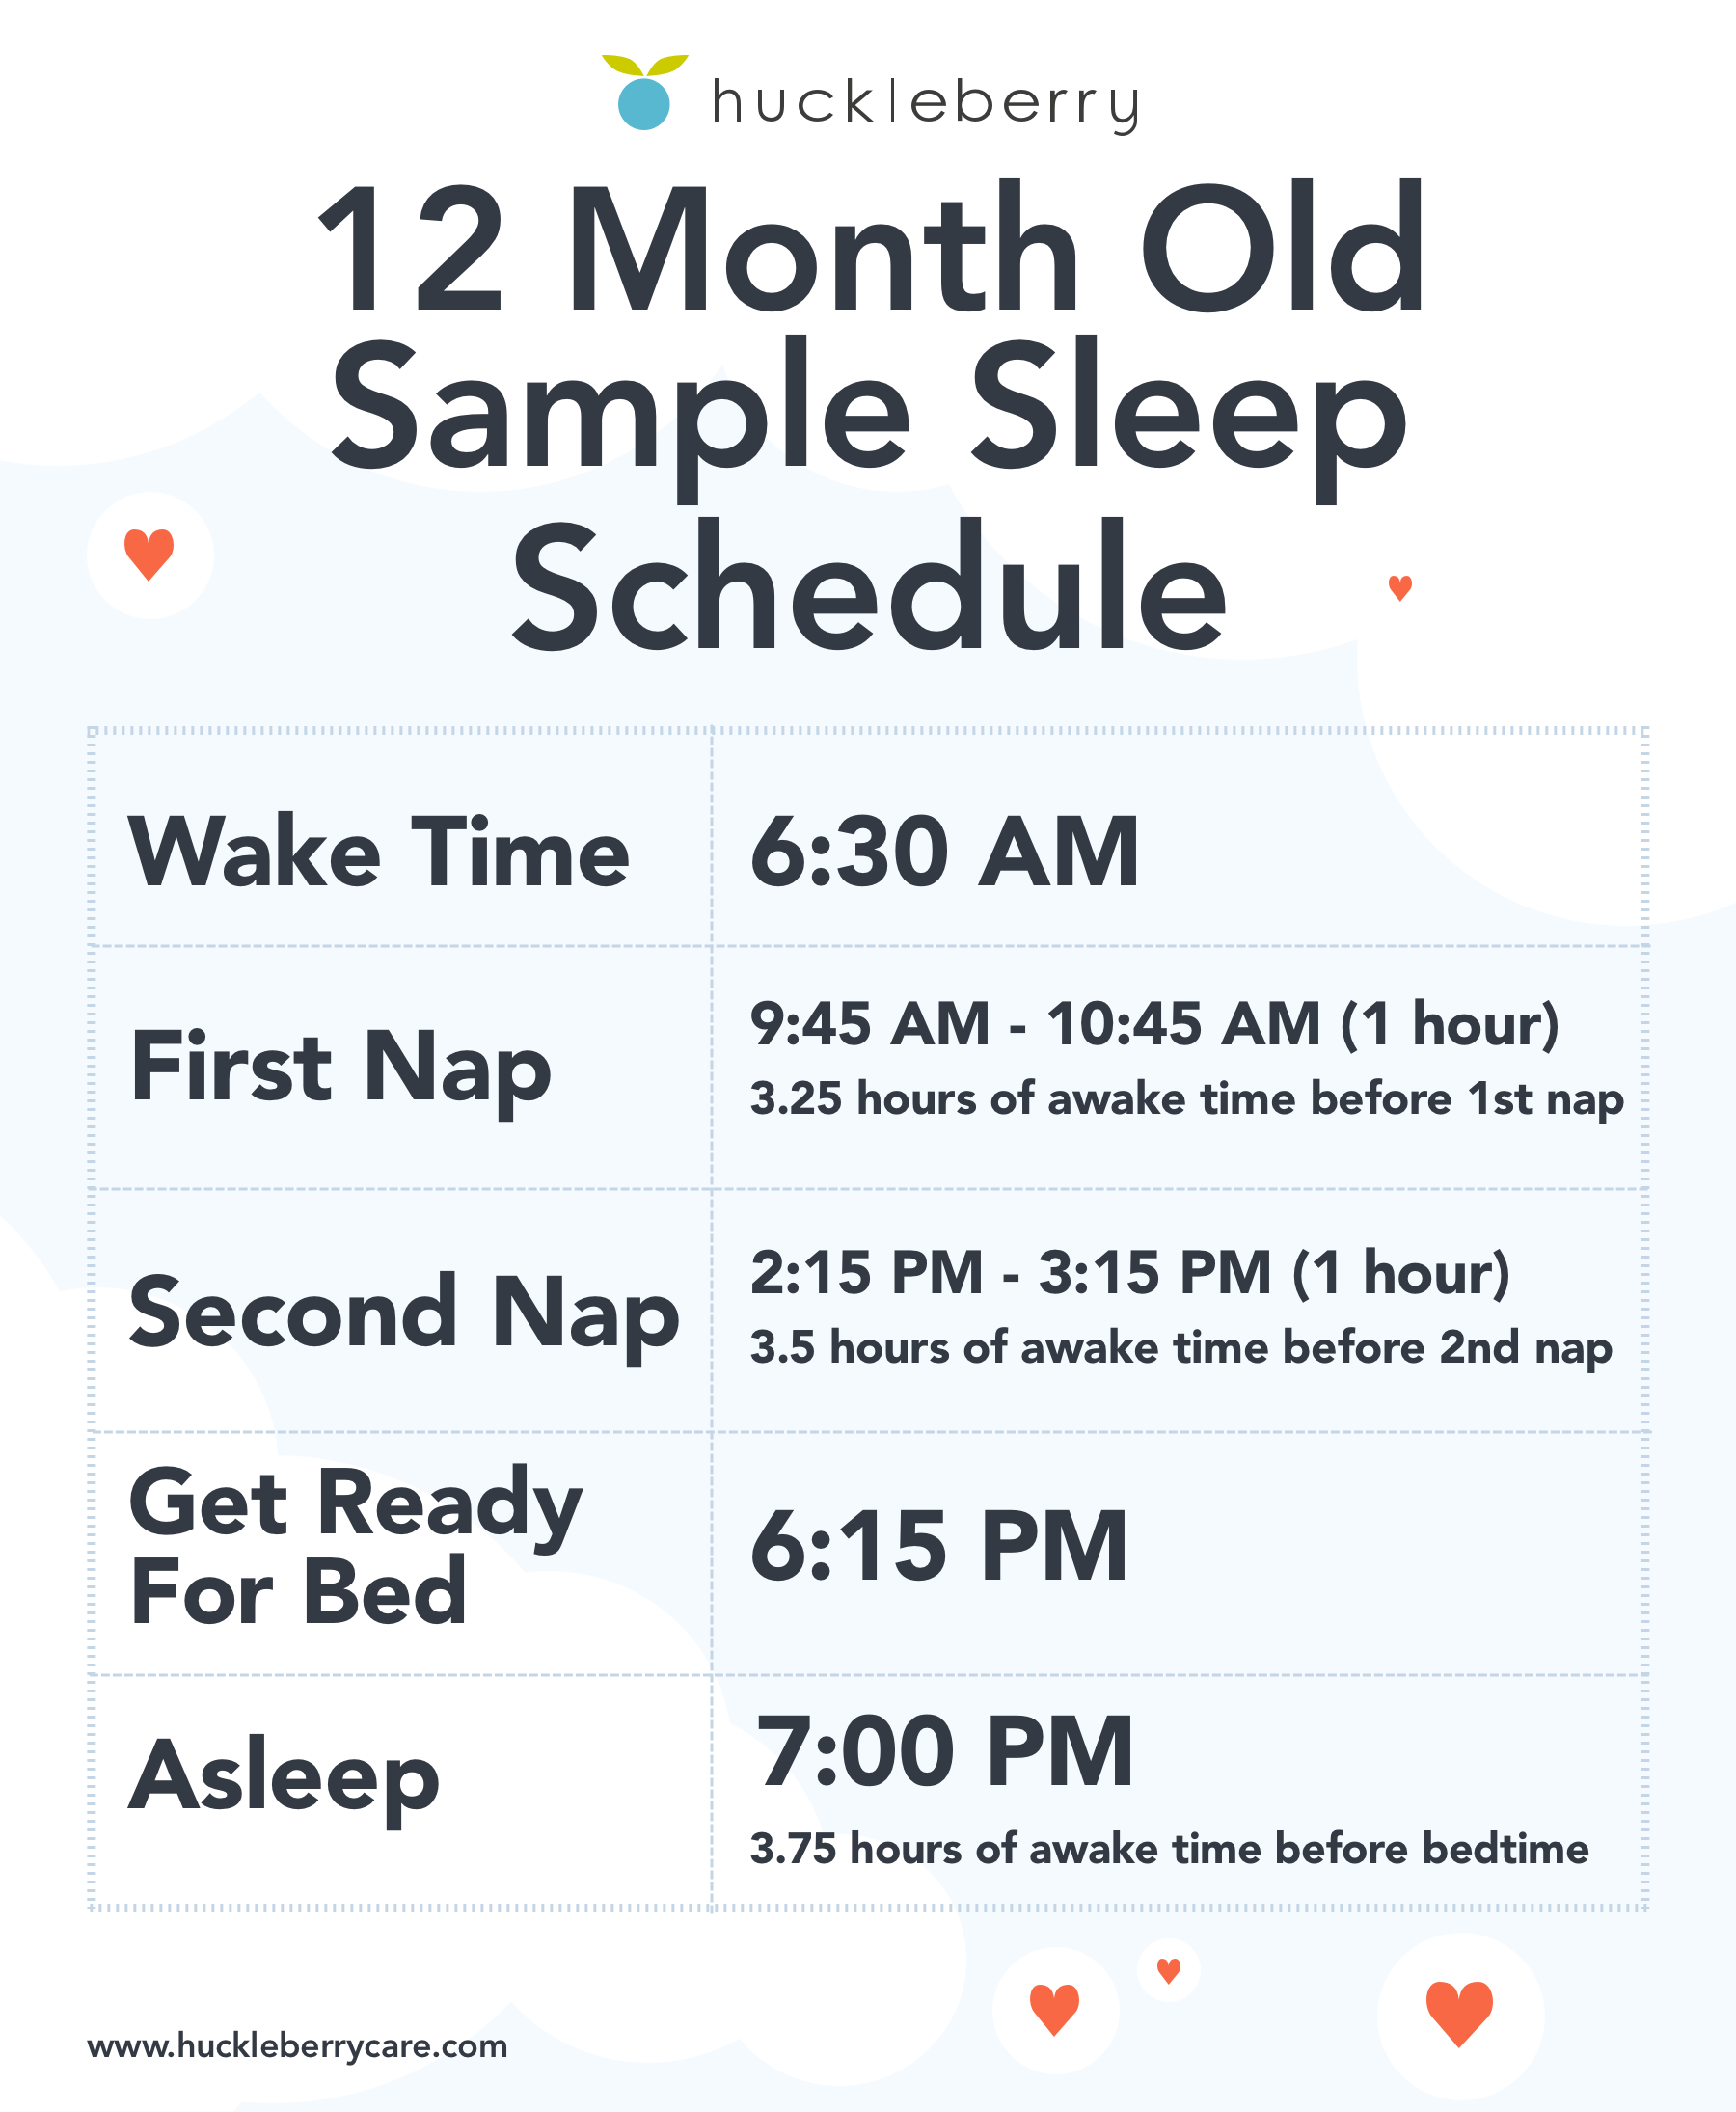 Huckleberry 12 Month Old Sample Sleep Schedule